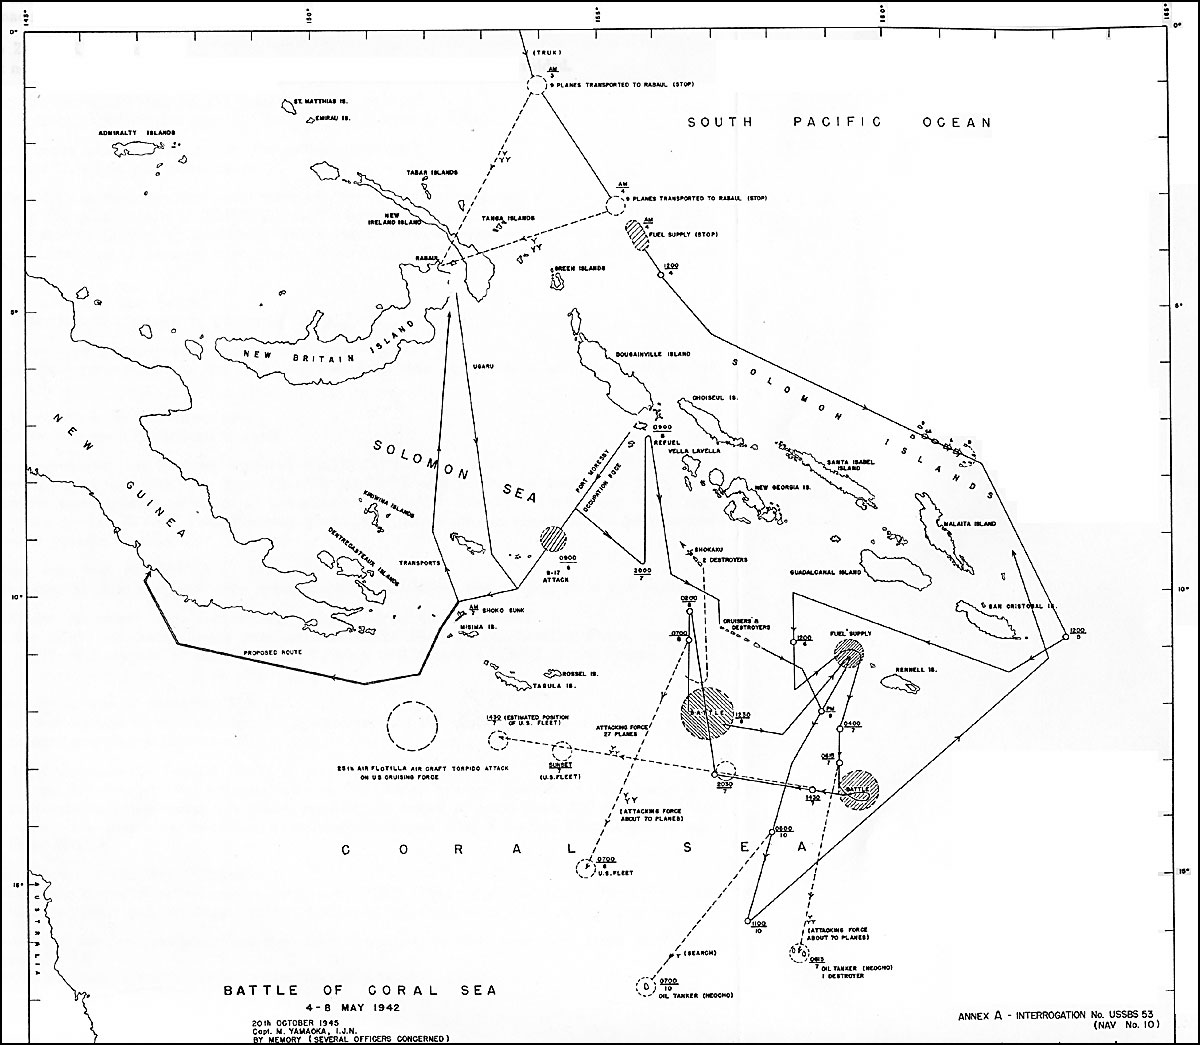 Coloring pages 50 states - United States Strategic Bombing Survey Interrogations Of Japanese Map Of Us States Coloring Page